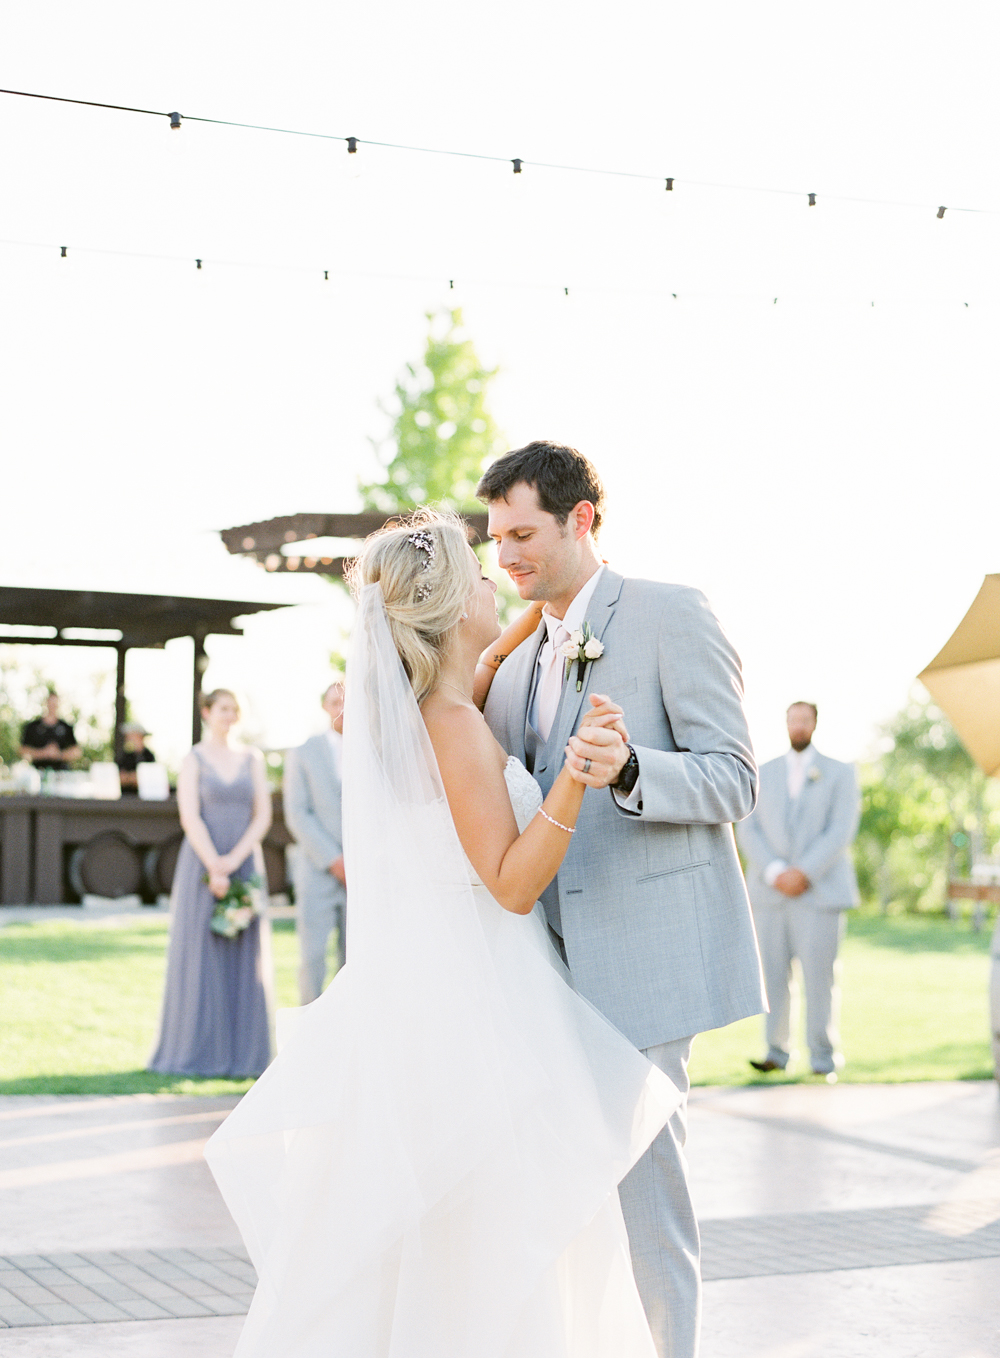 First Dance | Mount Palomar Winery Wedding | Blush and Lavender | San Diego wedding photographer | Temecula wedding photographer | Southern California film photographer | Whiskers and Willow Photography